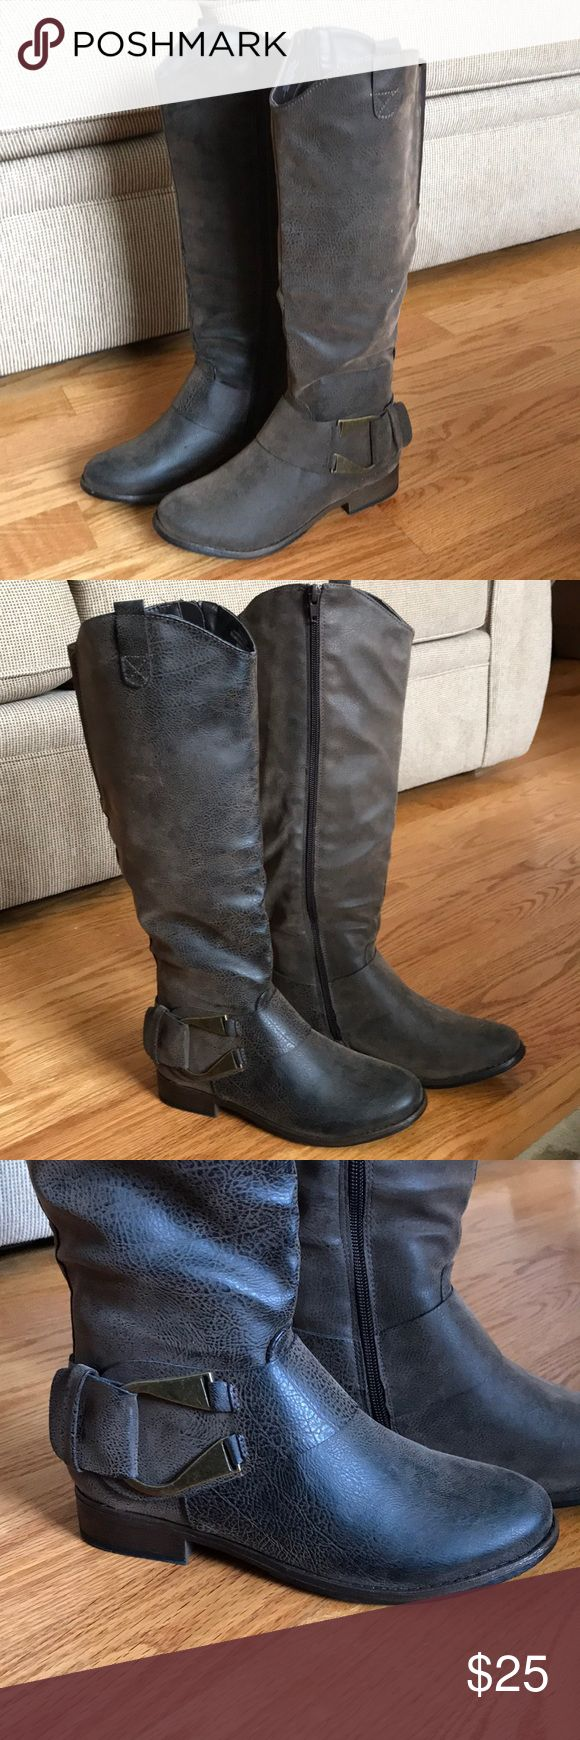 Women's Ruff Hewn boots Beautiful Ruff Hewn boots in perfect condition! Only worn once. Size 7 Ruff Hewn Shoes Heeled Boots